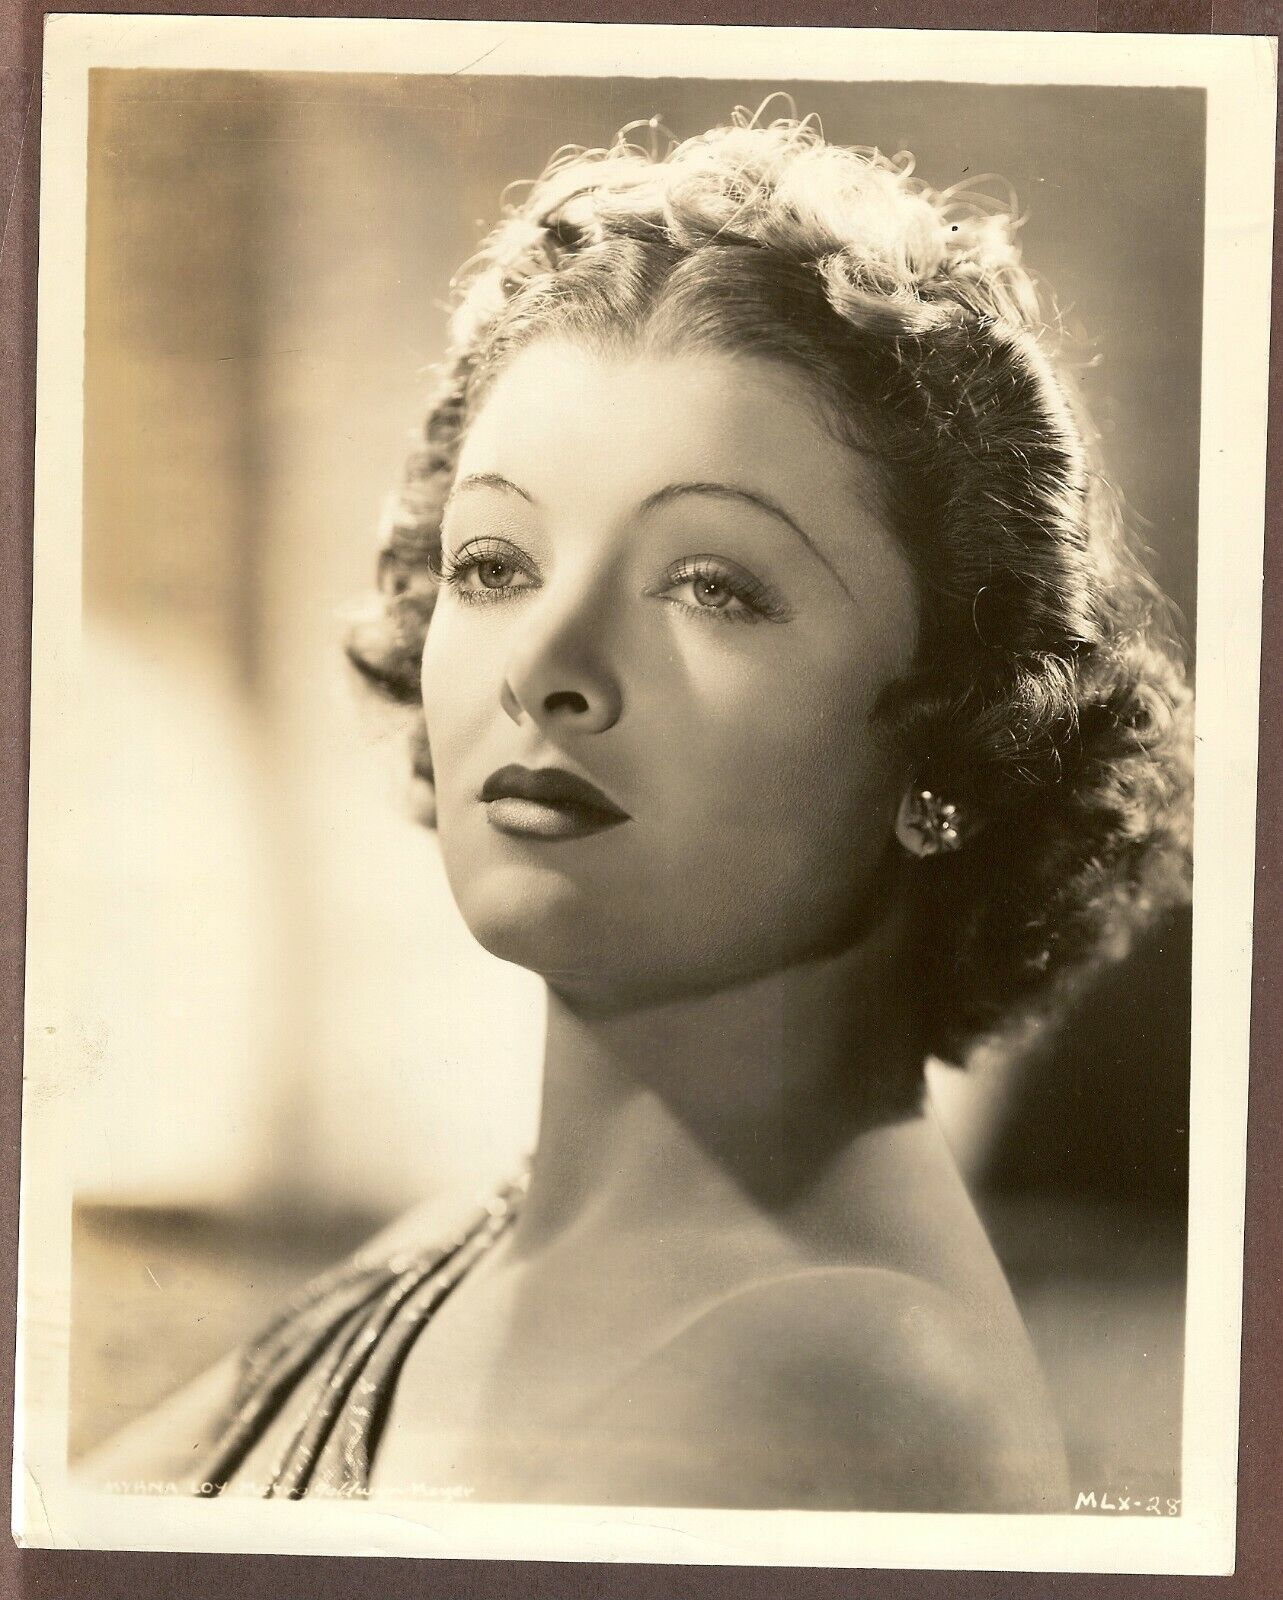 Undated Press Photo Portrait Style Image Of Actress Myrna Loy - $9.99